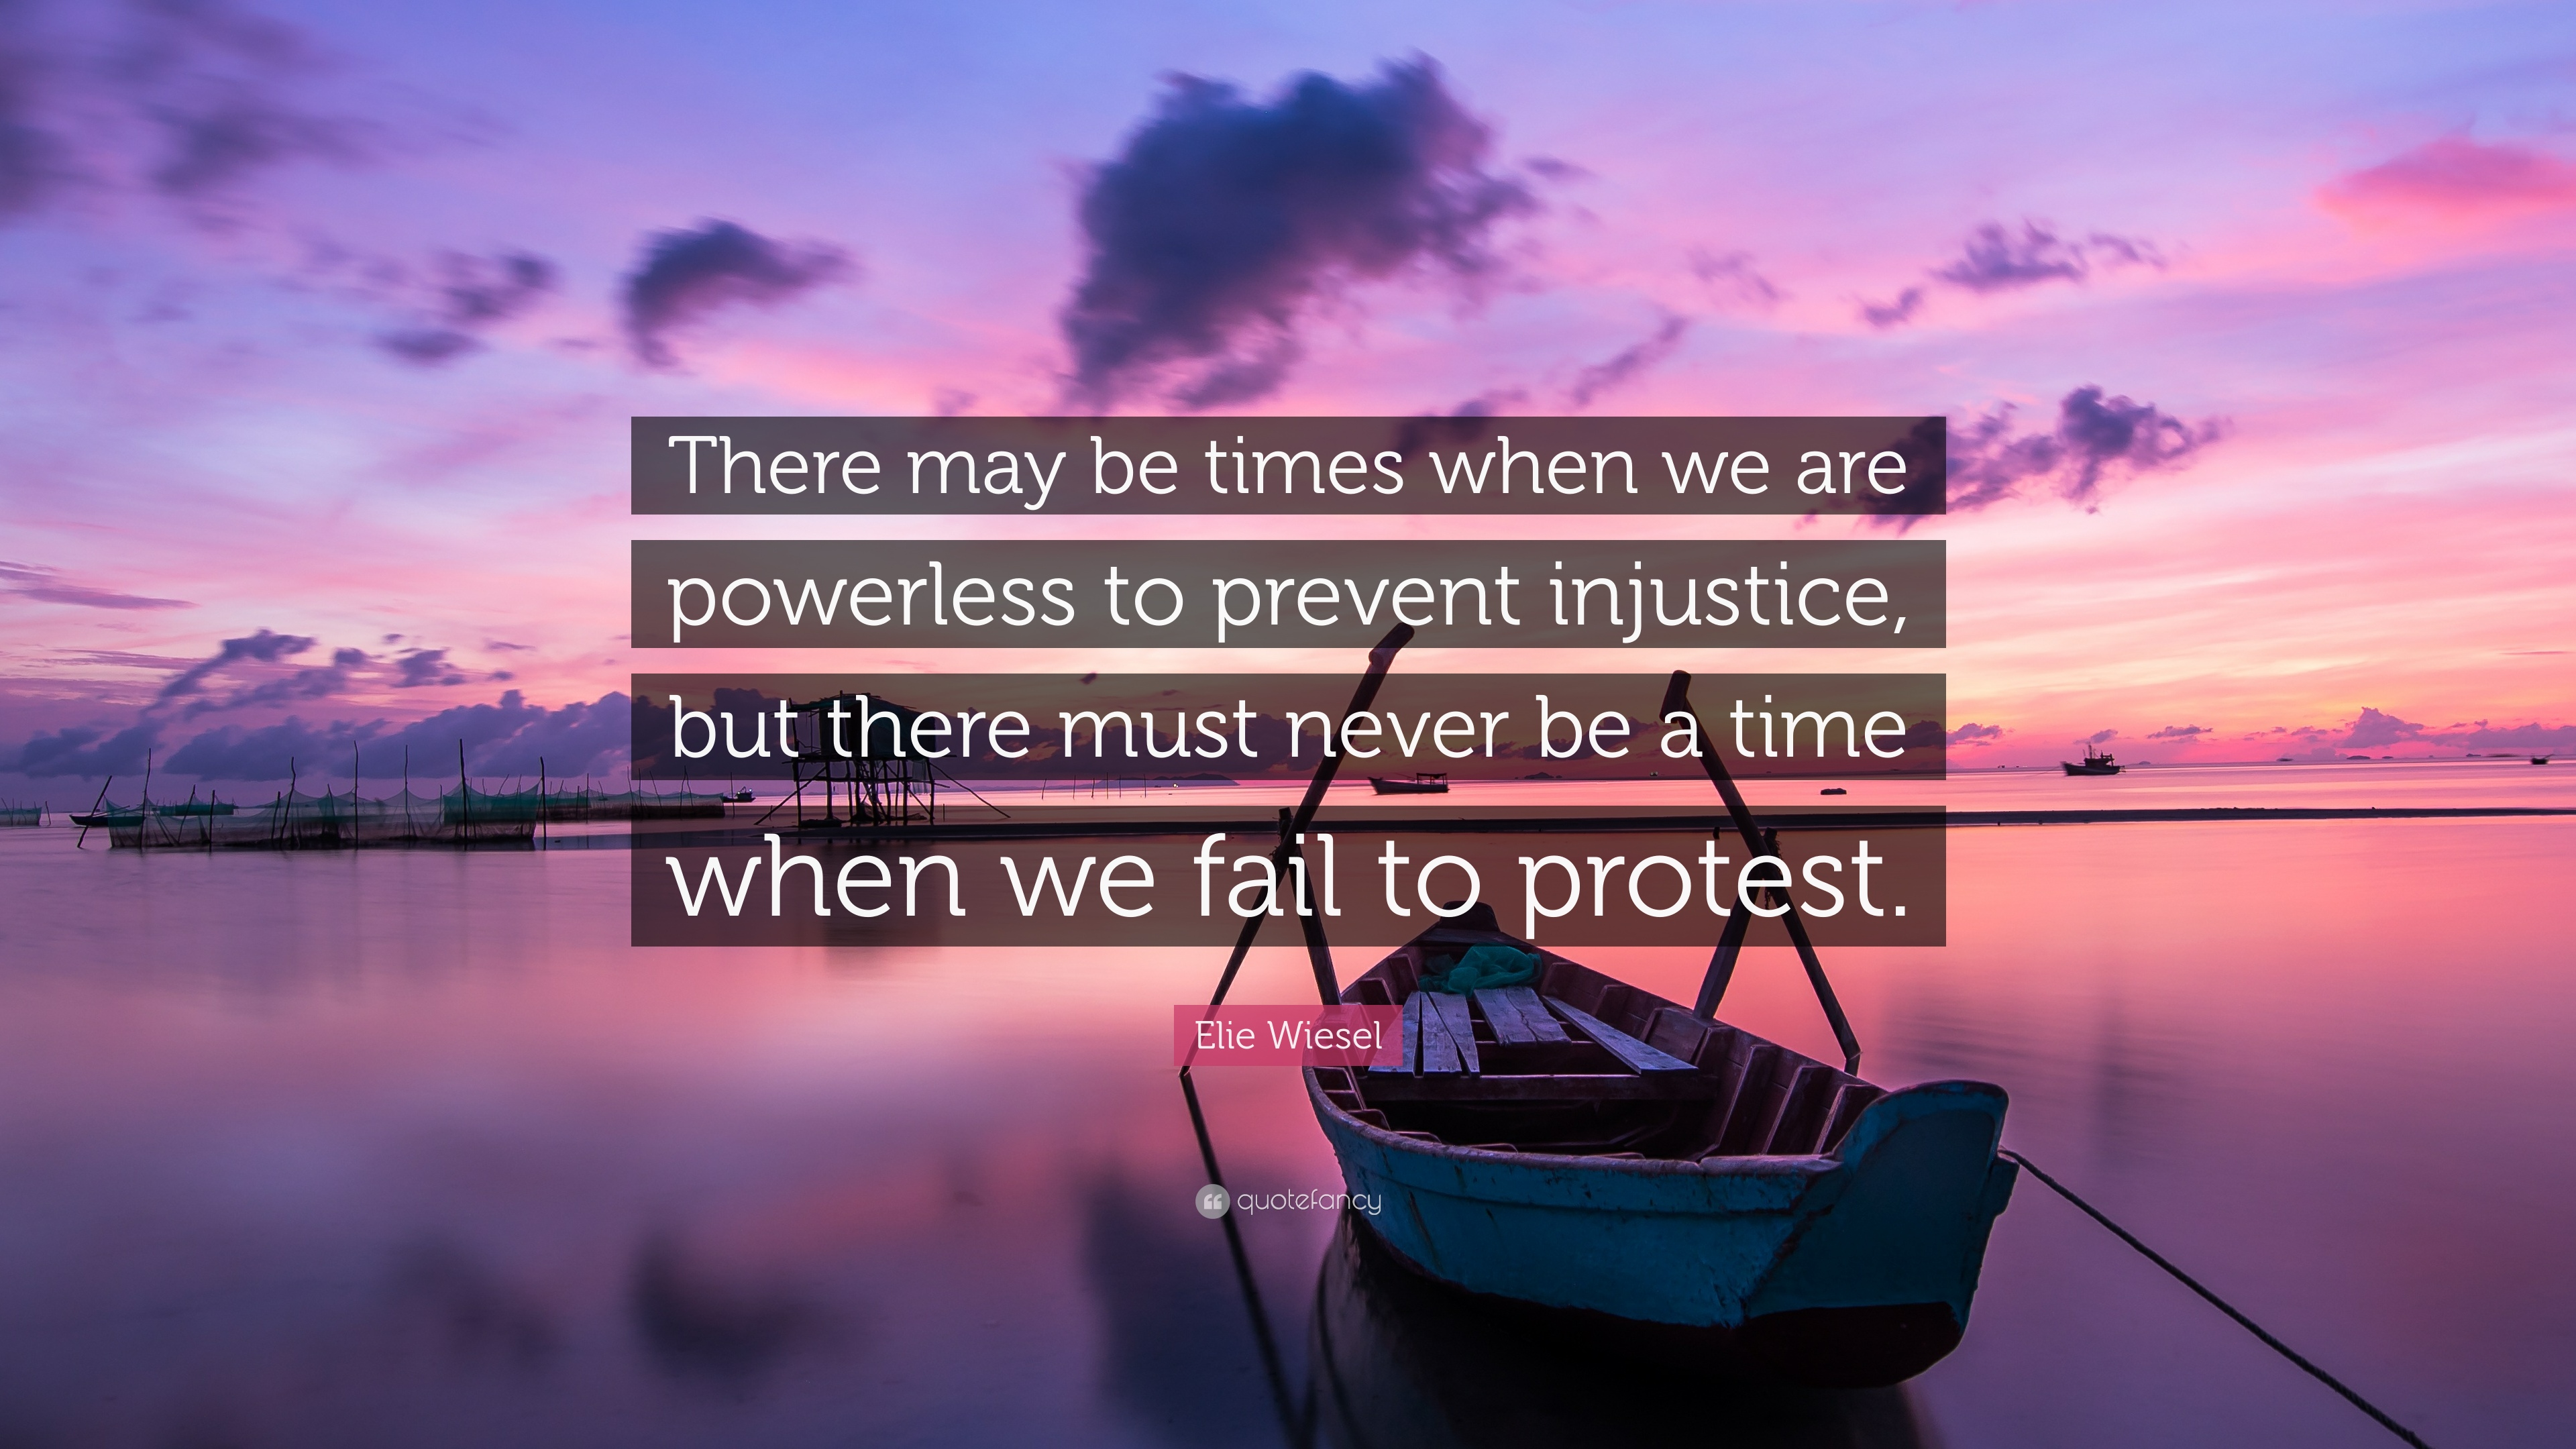 there may be times when we are powerless to prevent injustice but there must never be a time when we There may be times when we are powerless to prevent injustice, but there must never be a time when we fail to protest - elie wiesel #quote.